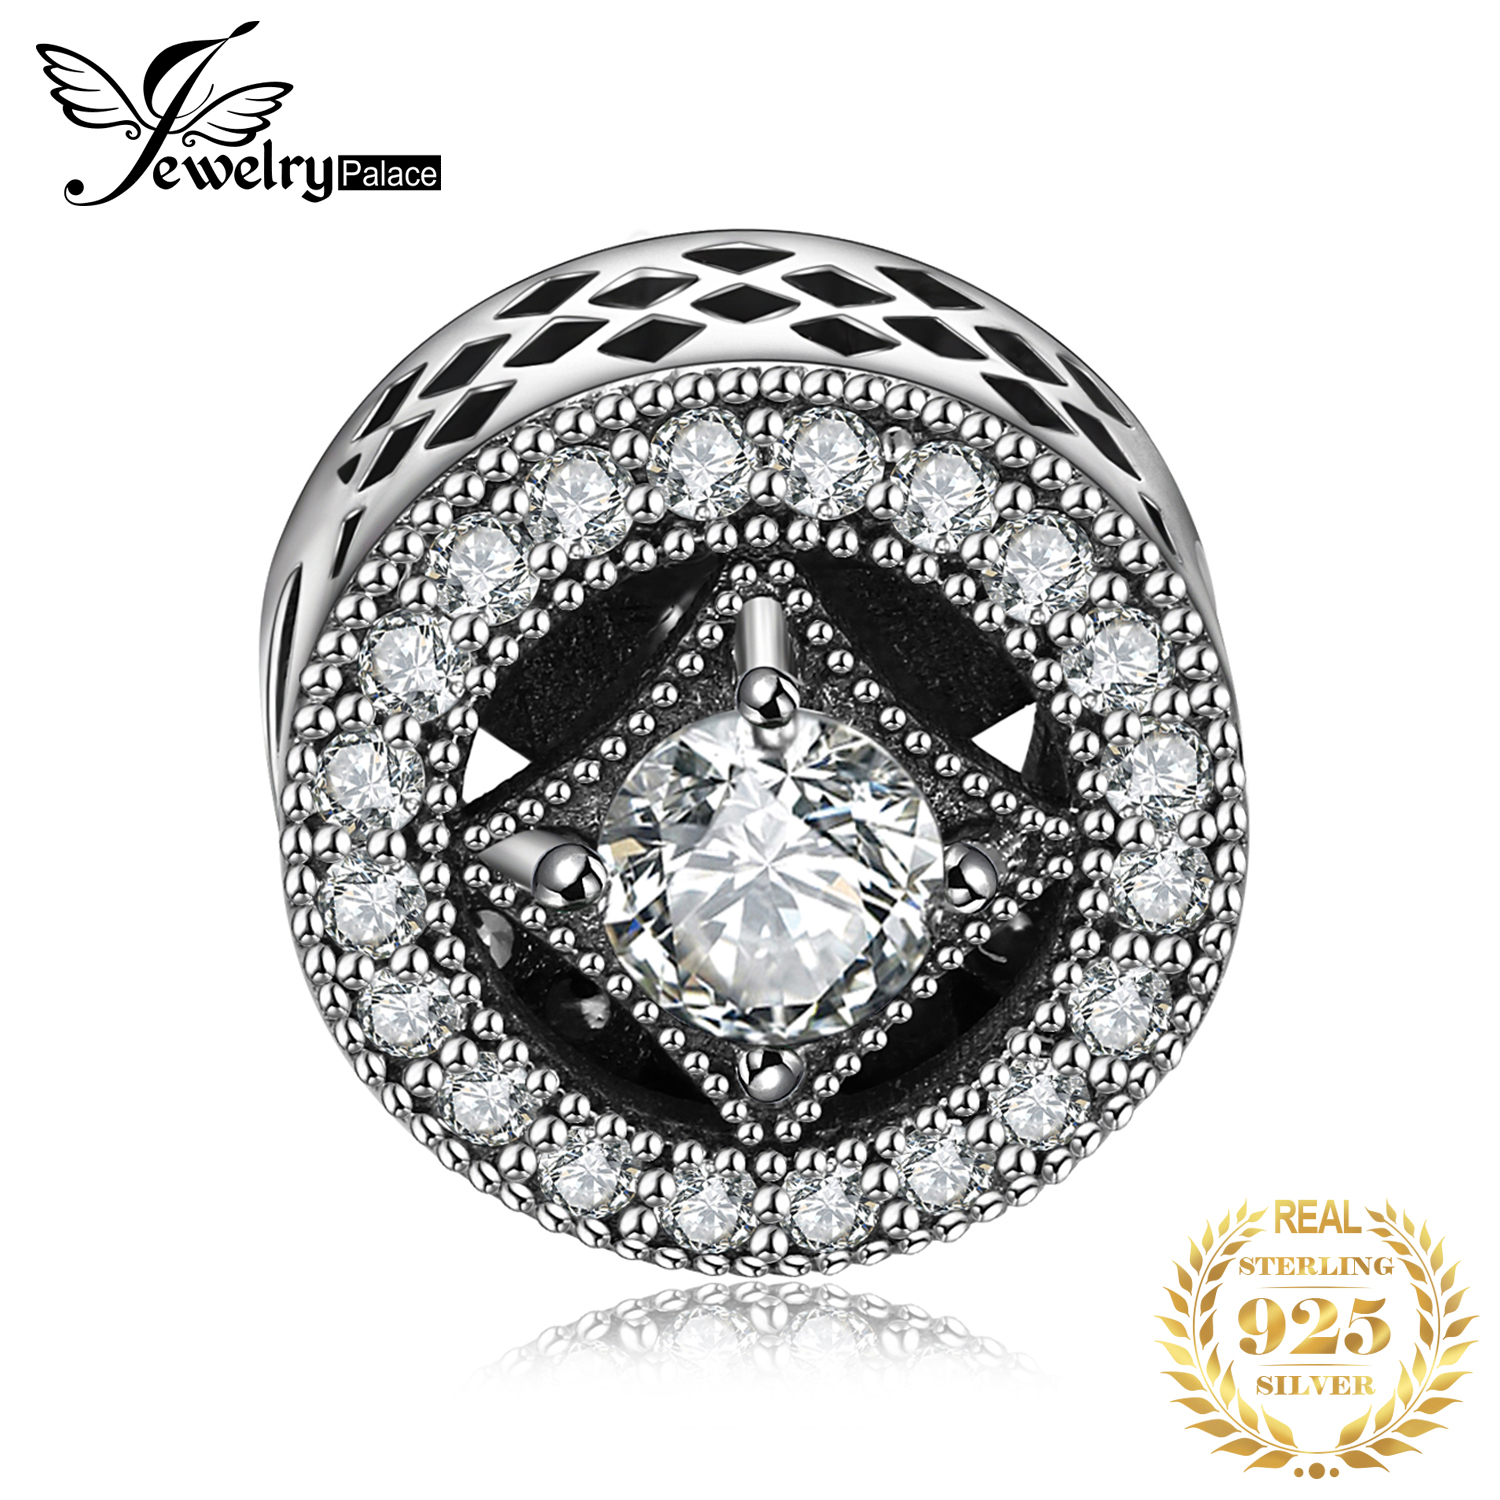 JewelryPalace Invitations 925 Sterling Silver Beads Charms Silver 925 Original For Bracelet Silver 925 Original Jewelry Making